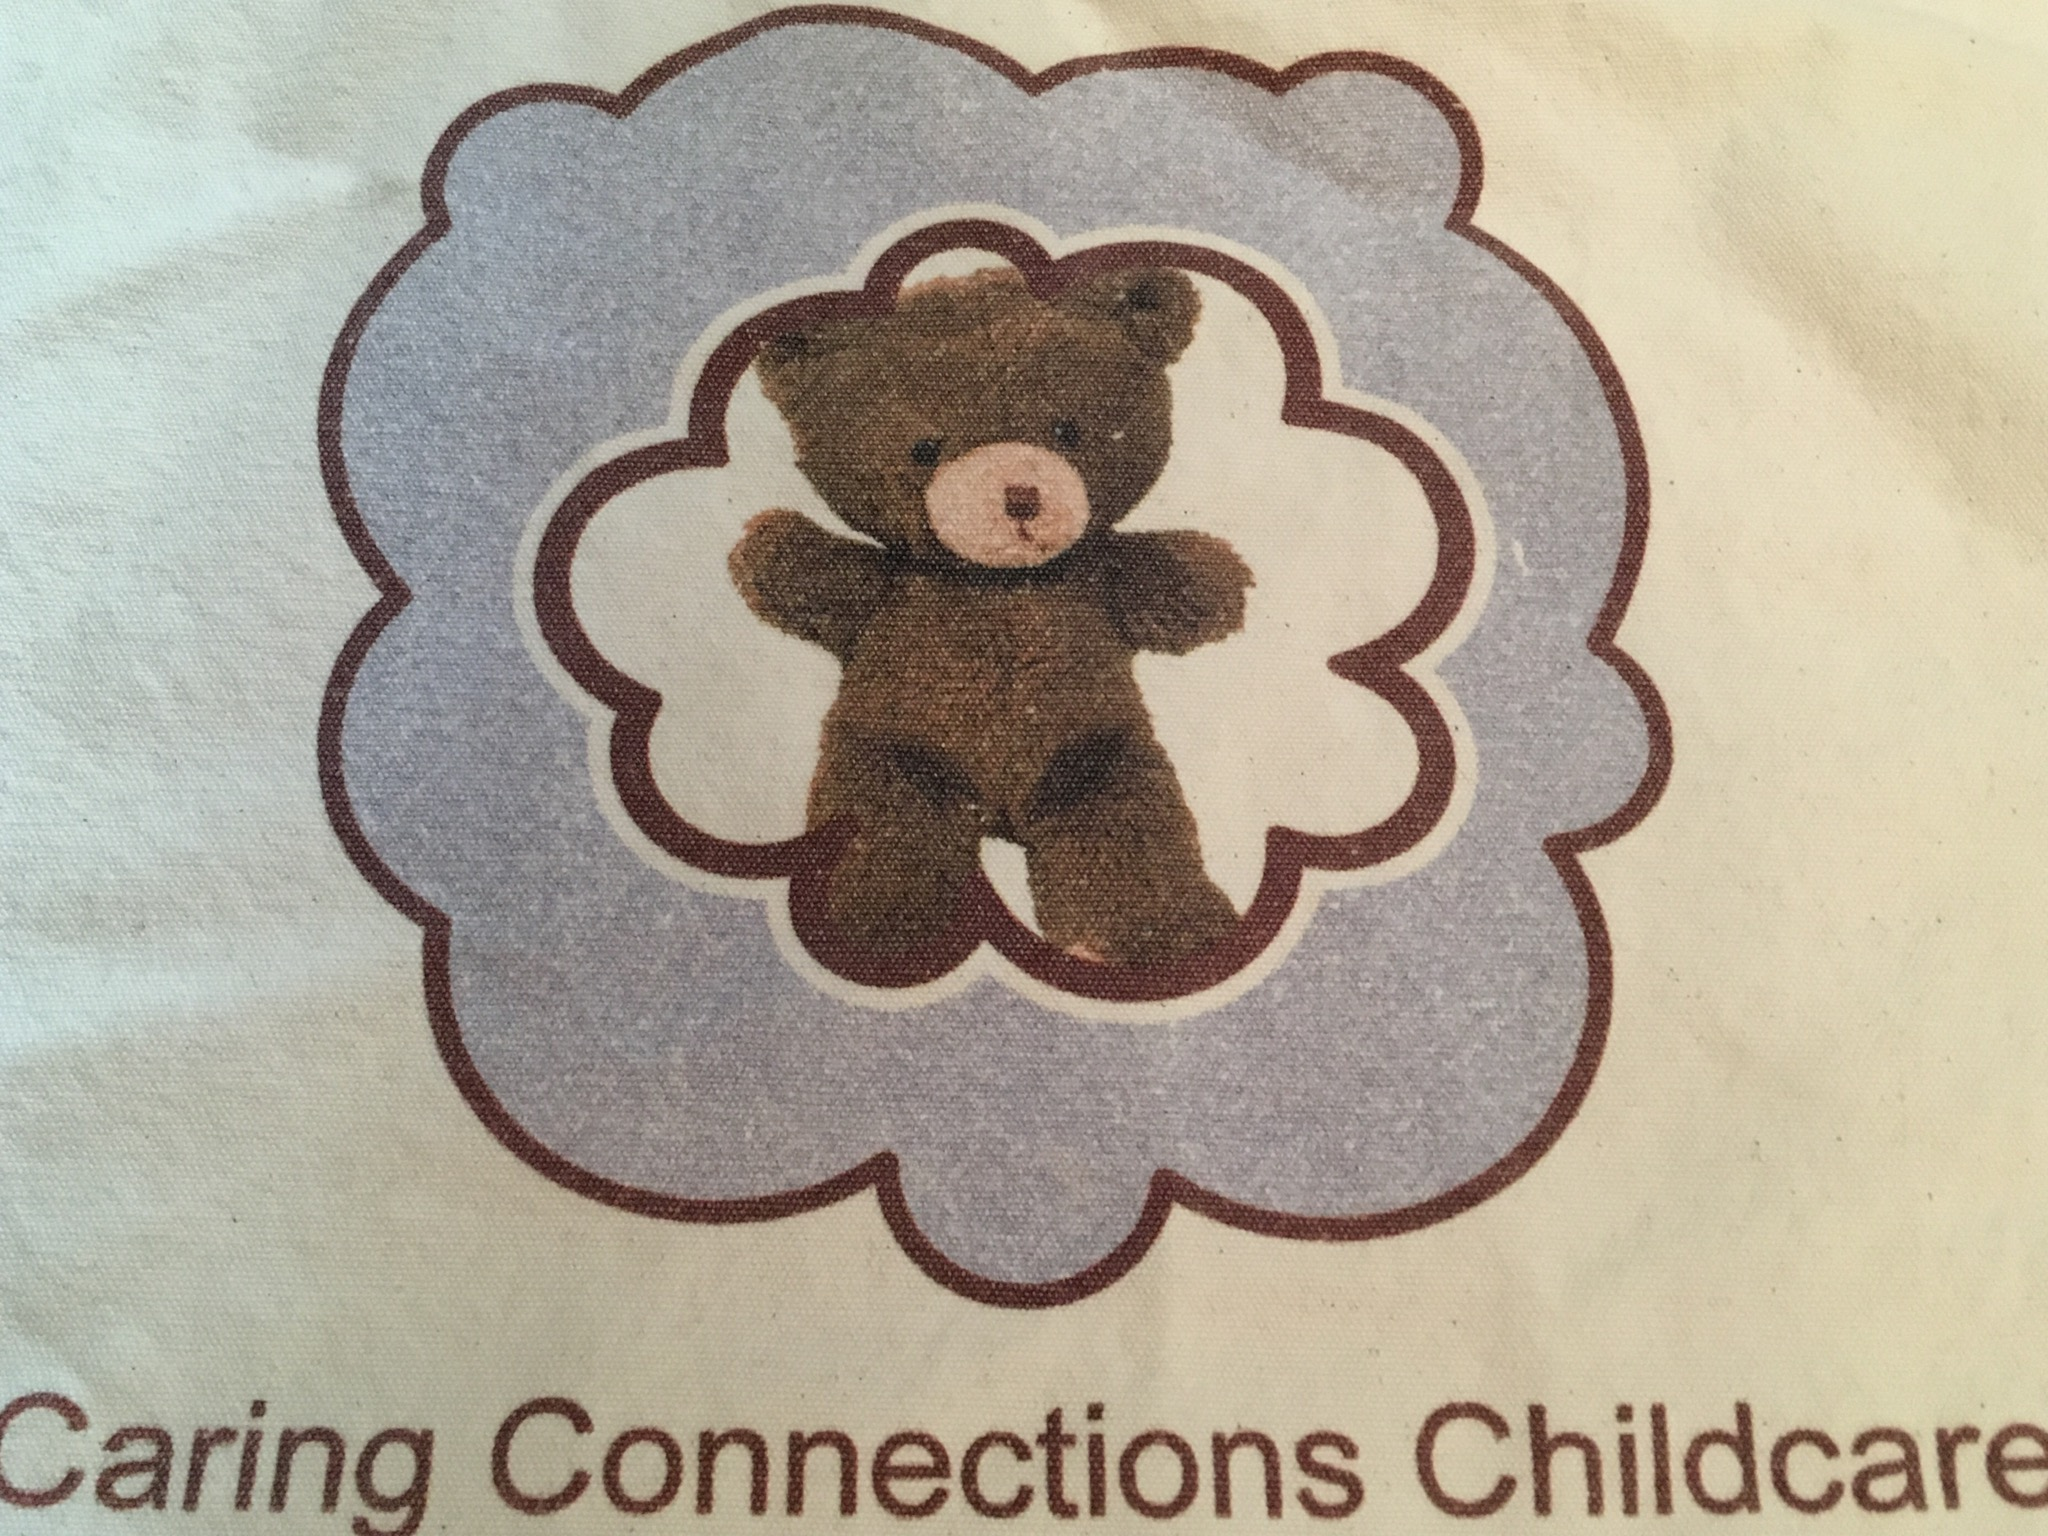 Caring Connections Childcare